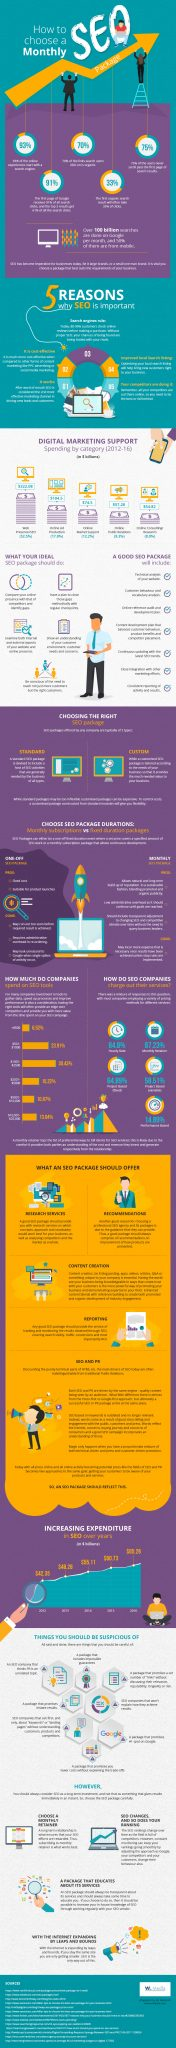 How to Choose Your Monthly SEO Package infographic image